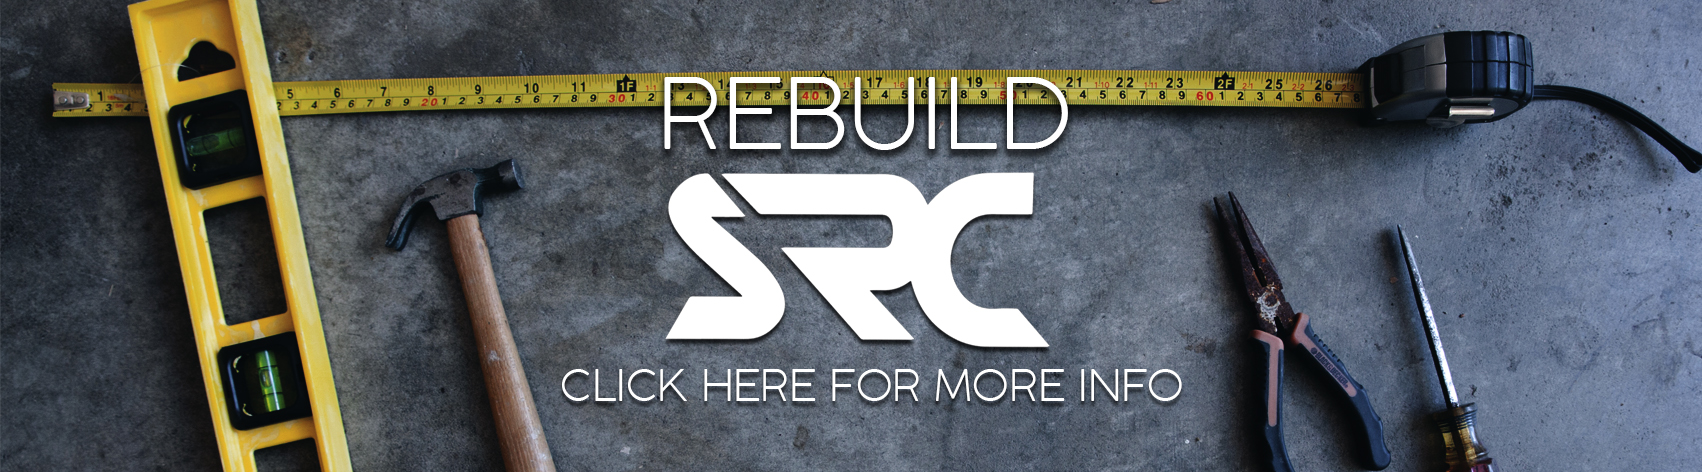 RebuildSRC-Website